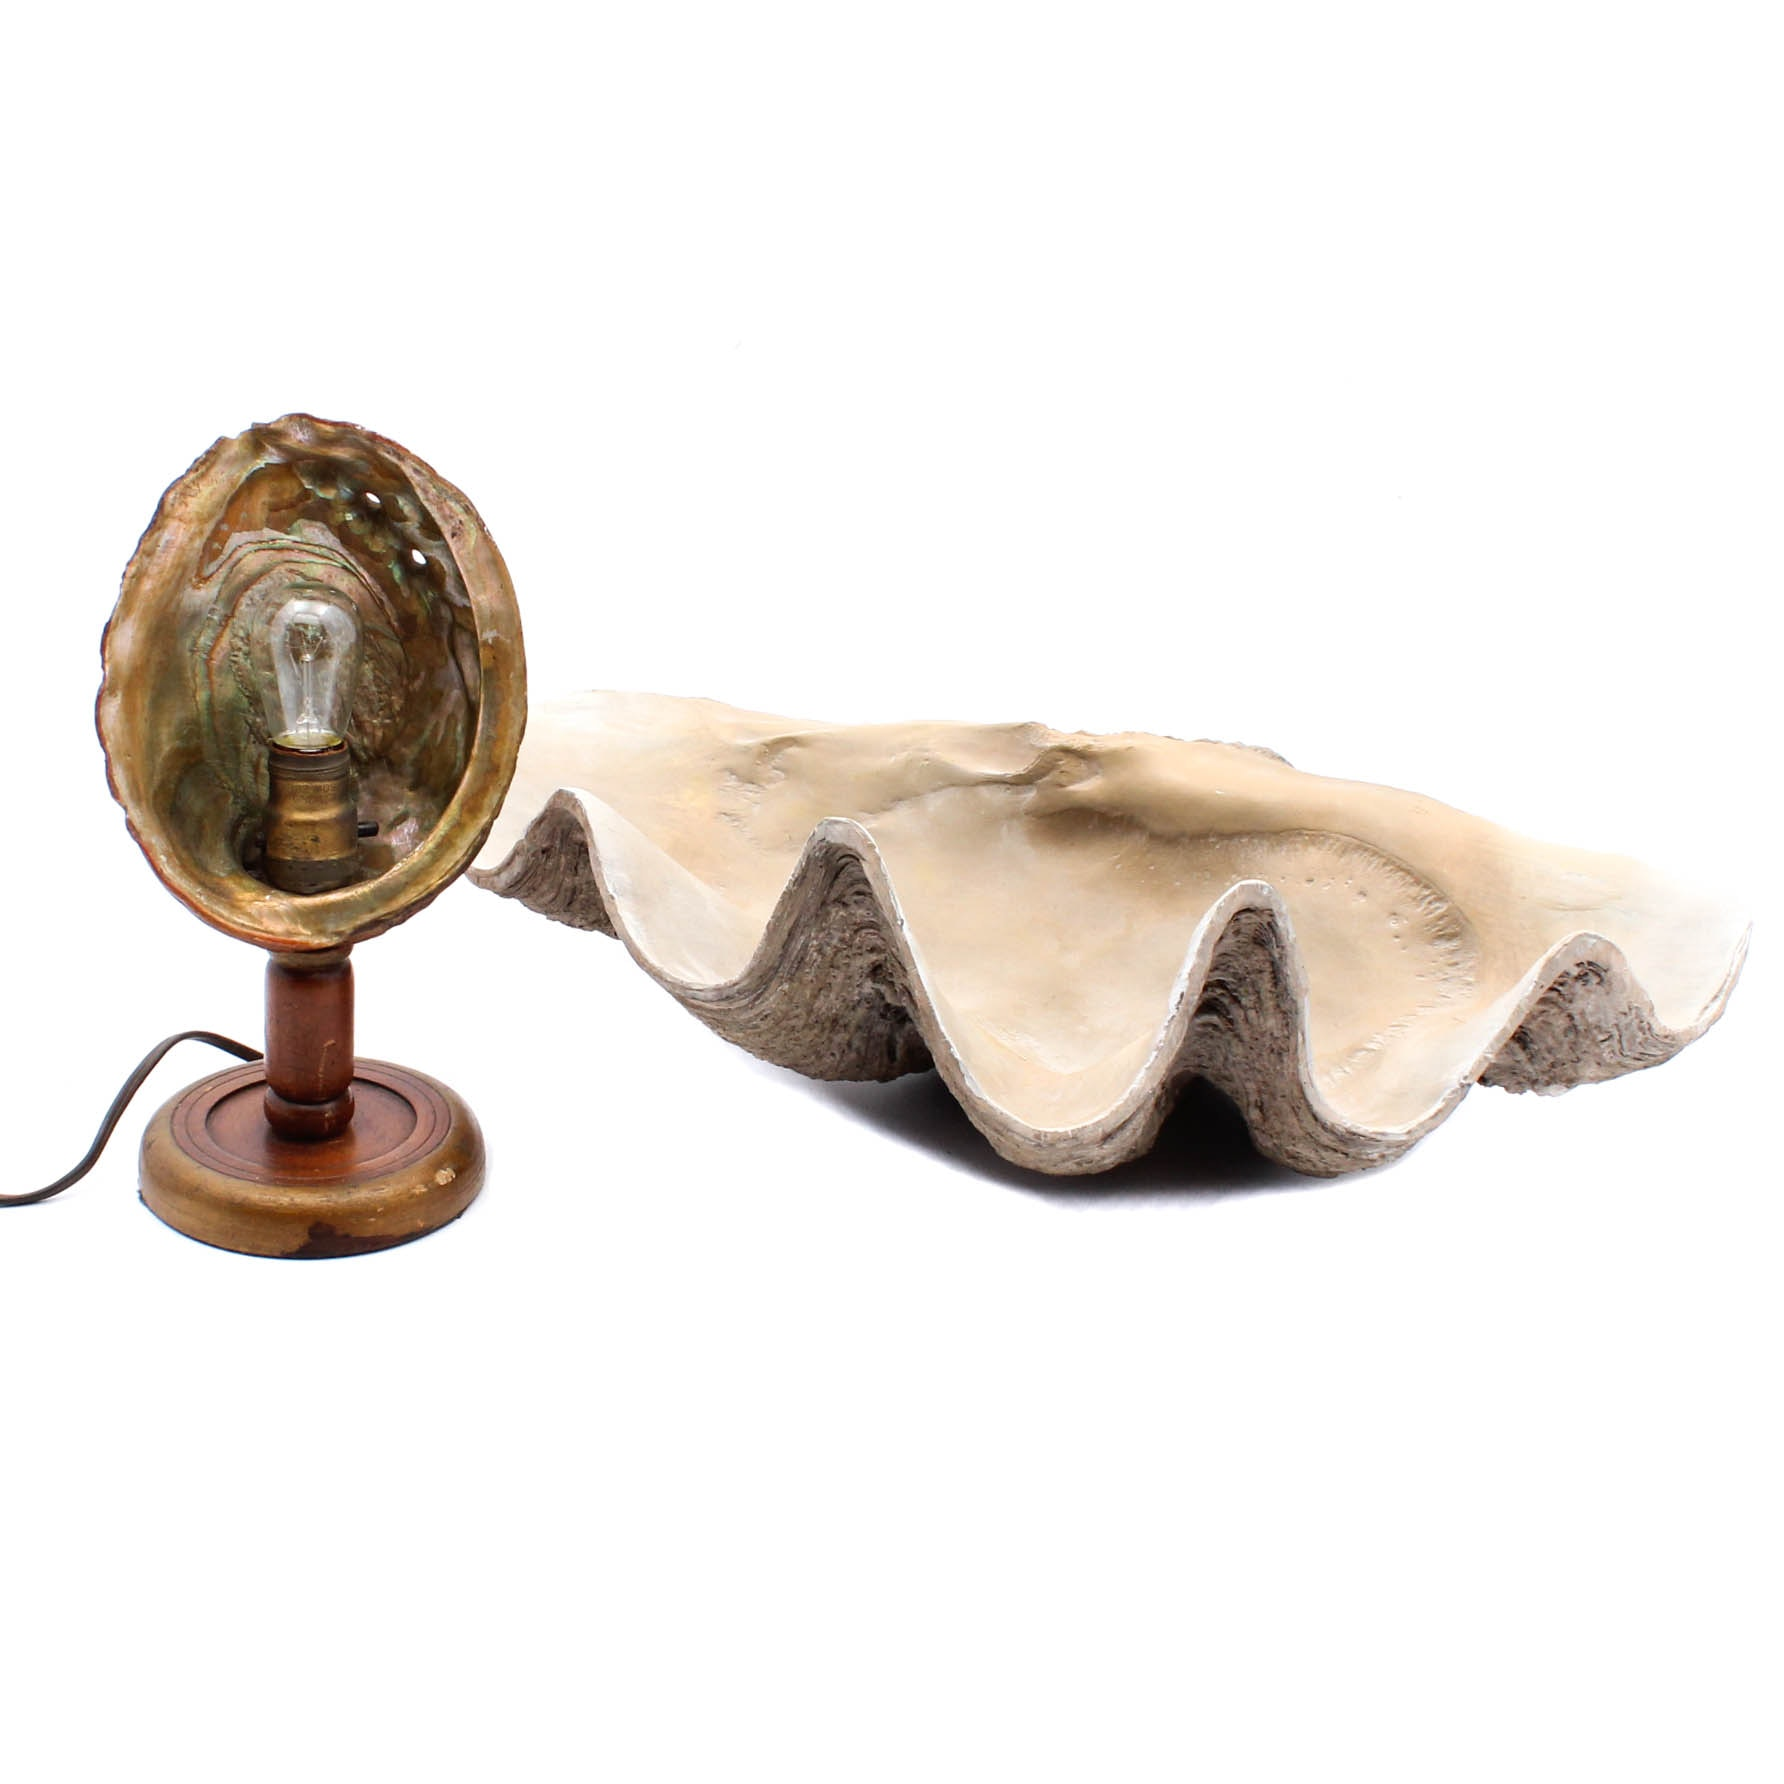 Circa 1940s Shell Lamp and Large Clam Casting